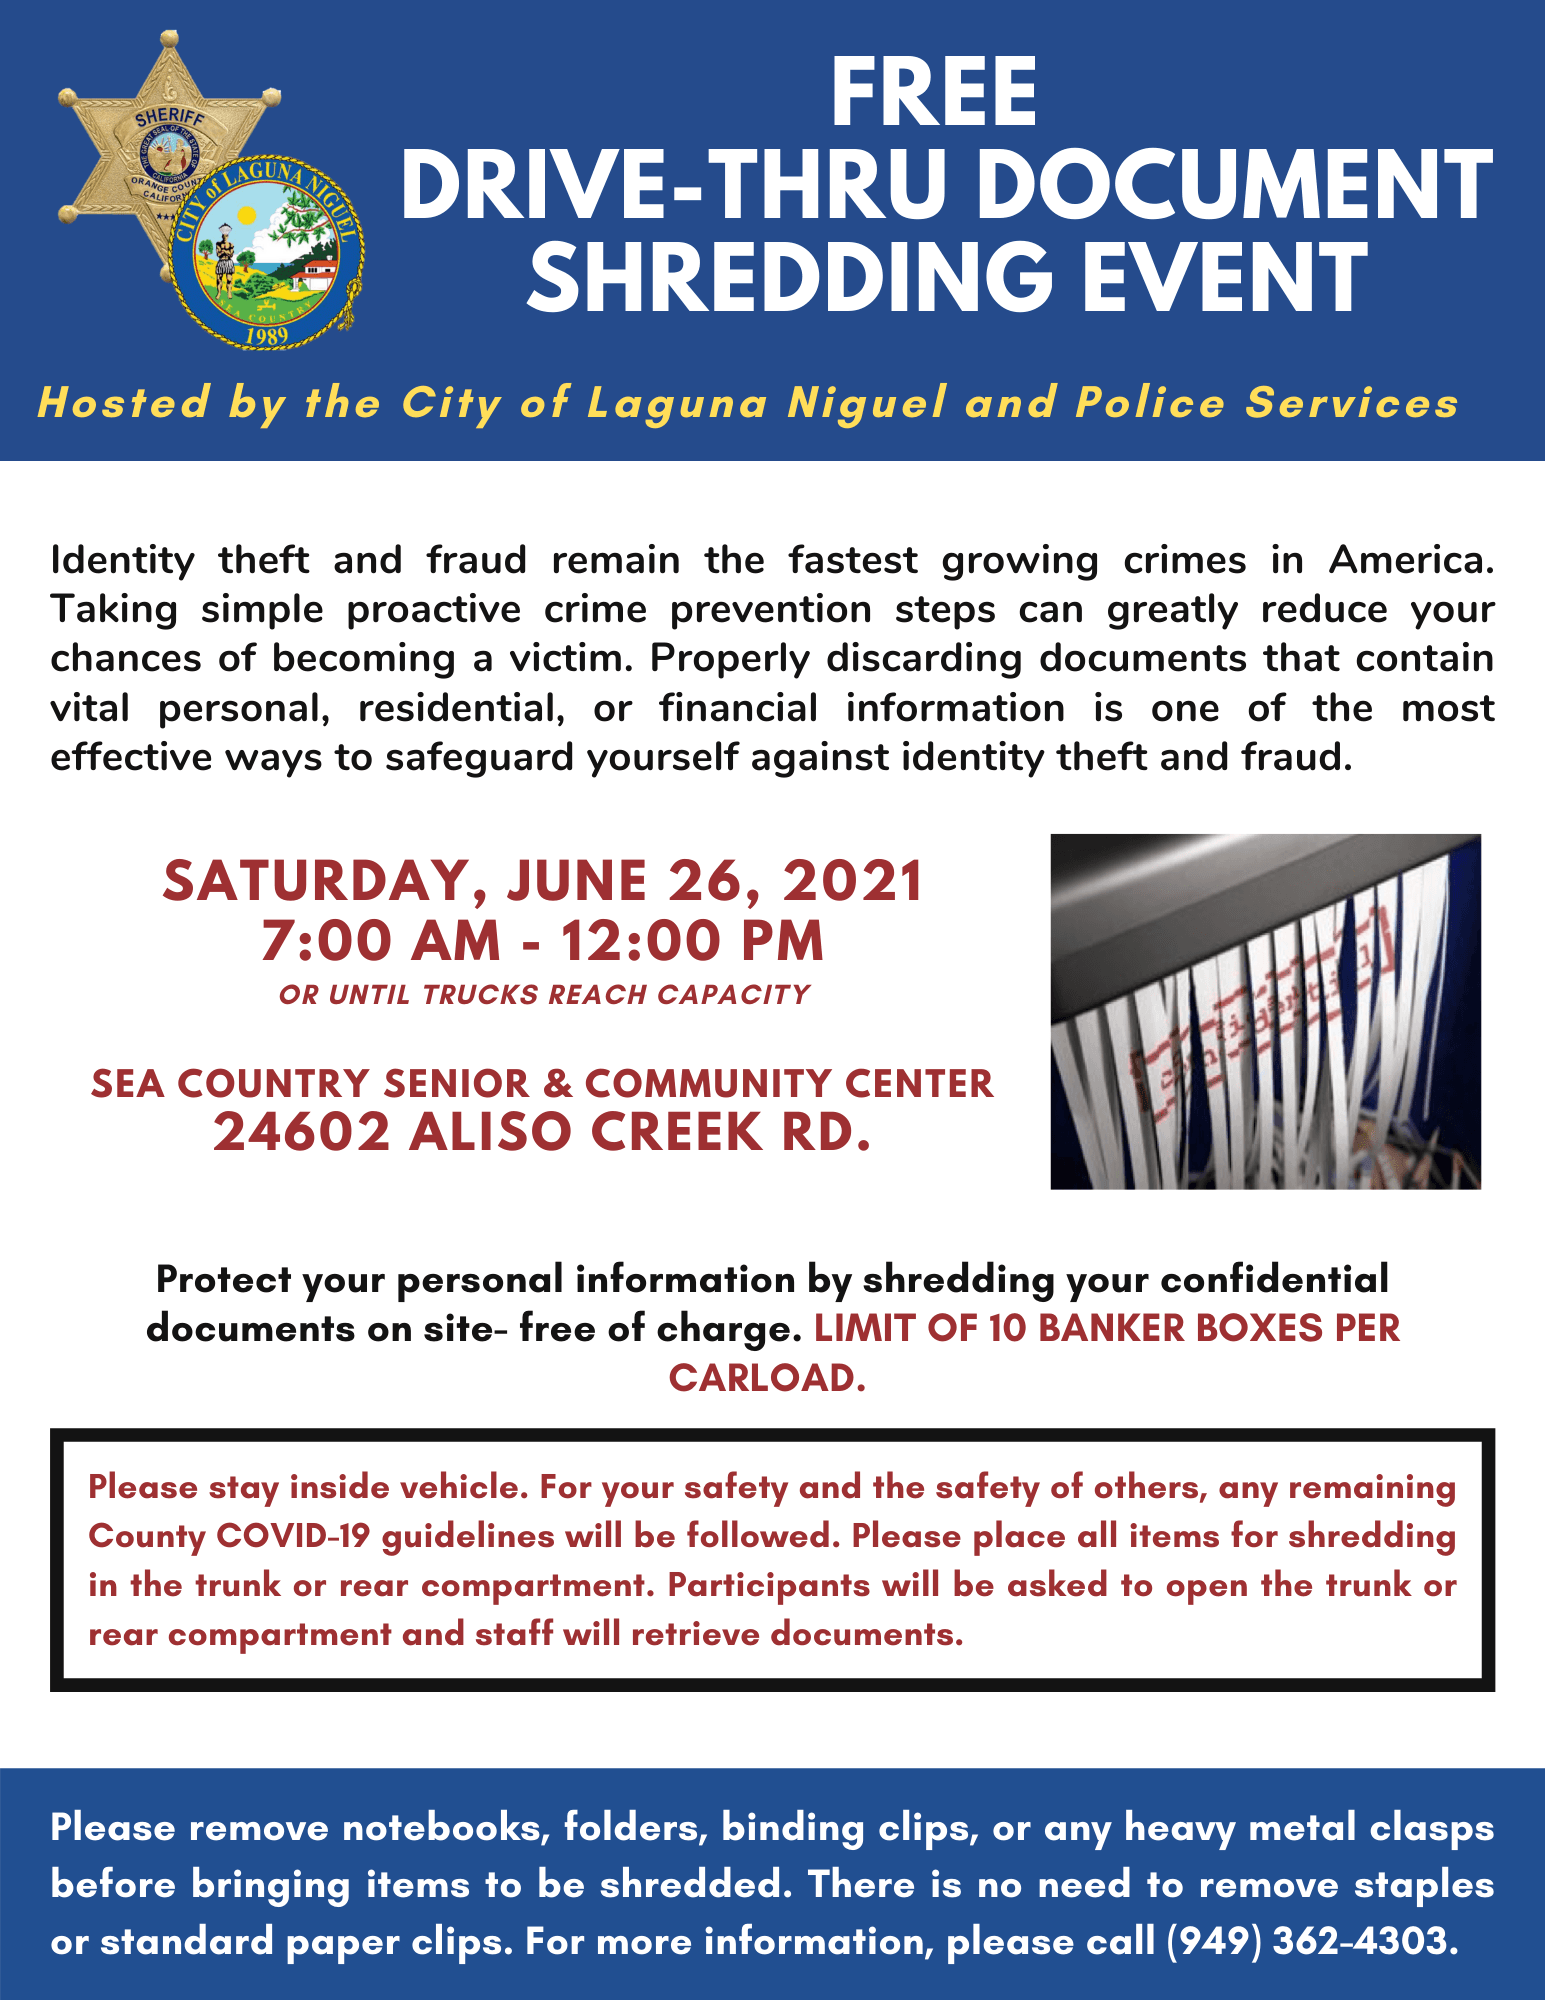 Shred Event on June 26, 2021